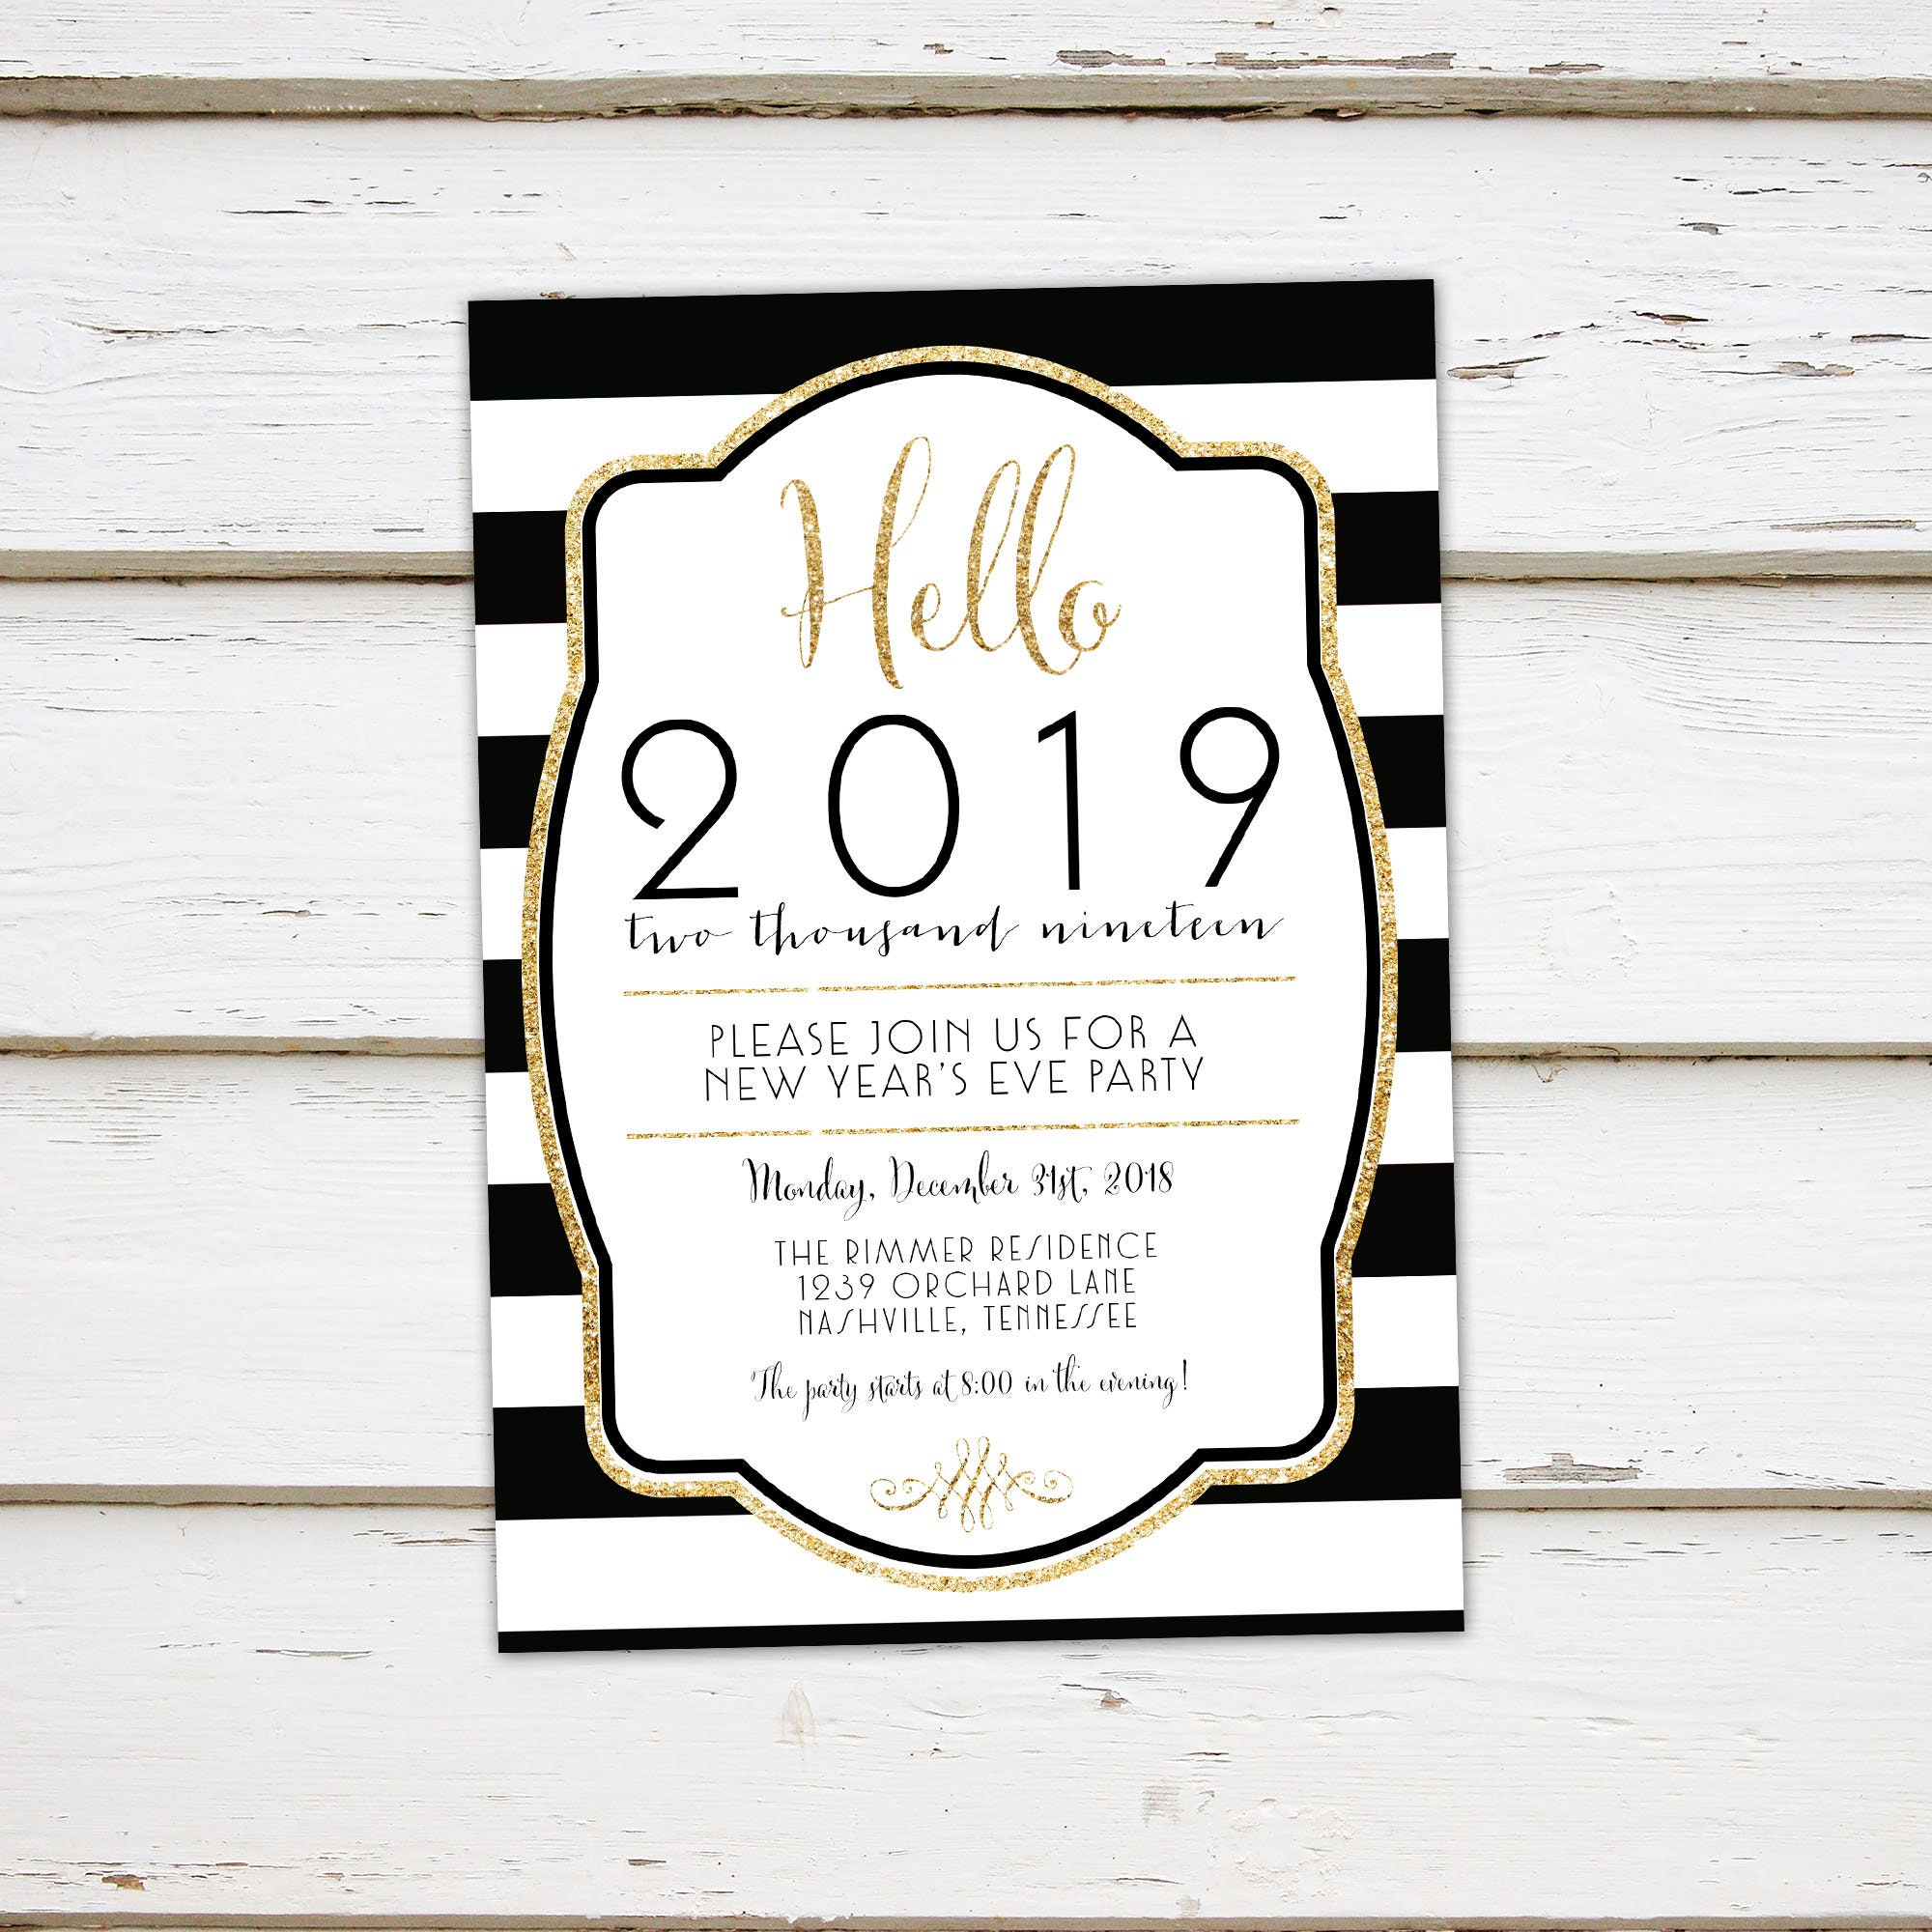 printable new years eve party invitation 2019 new years party hello 2019 gold glitter black bold stripes art deco mb263